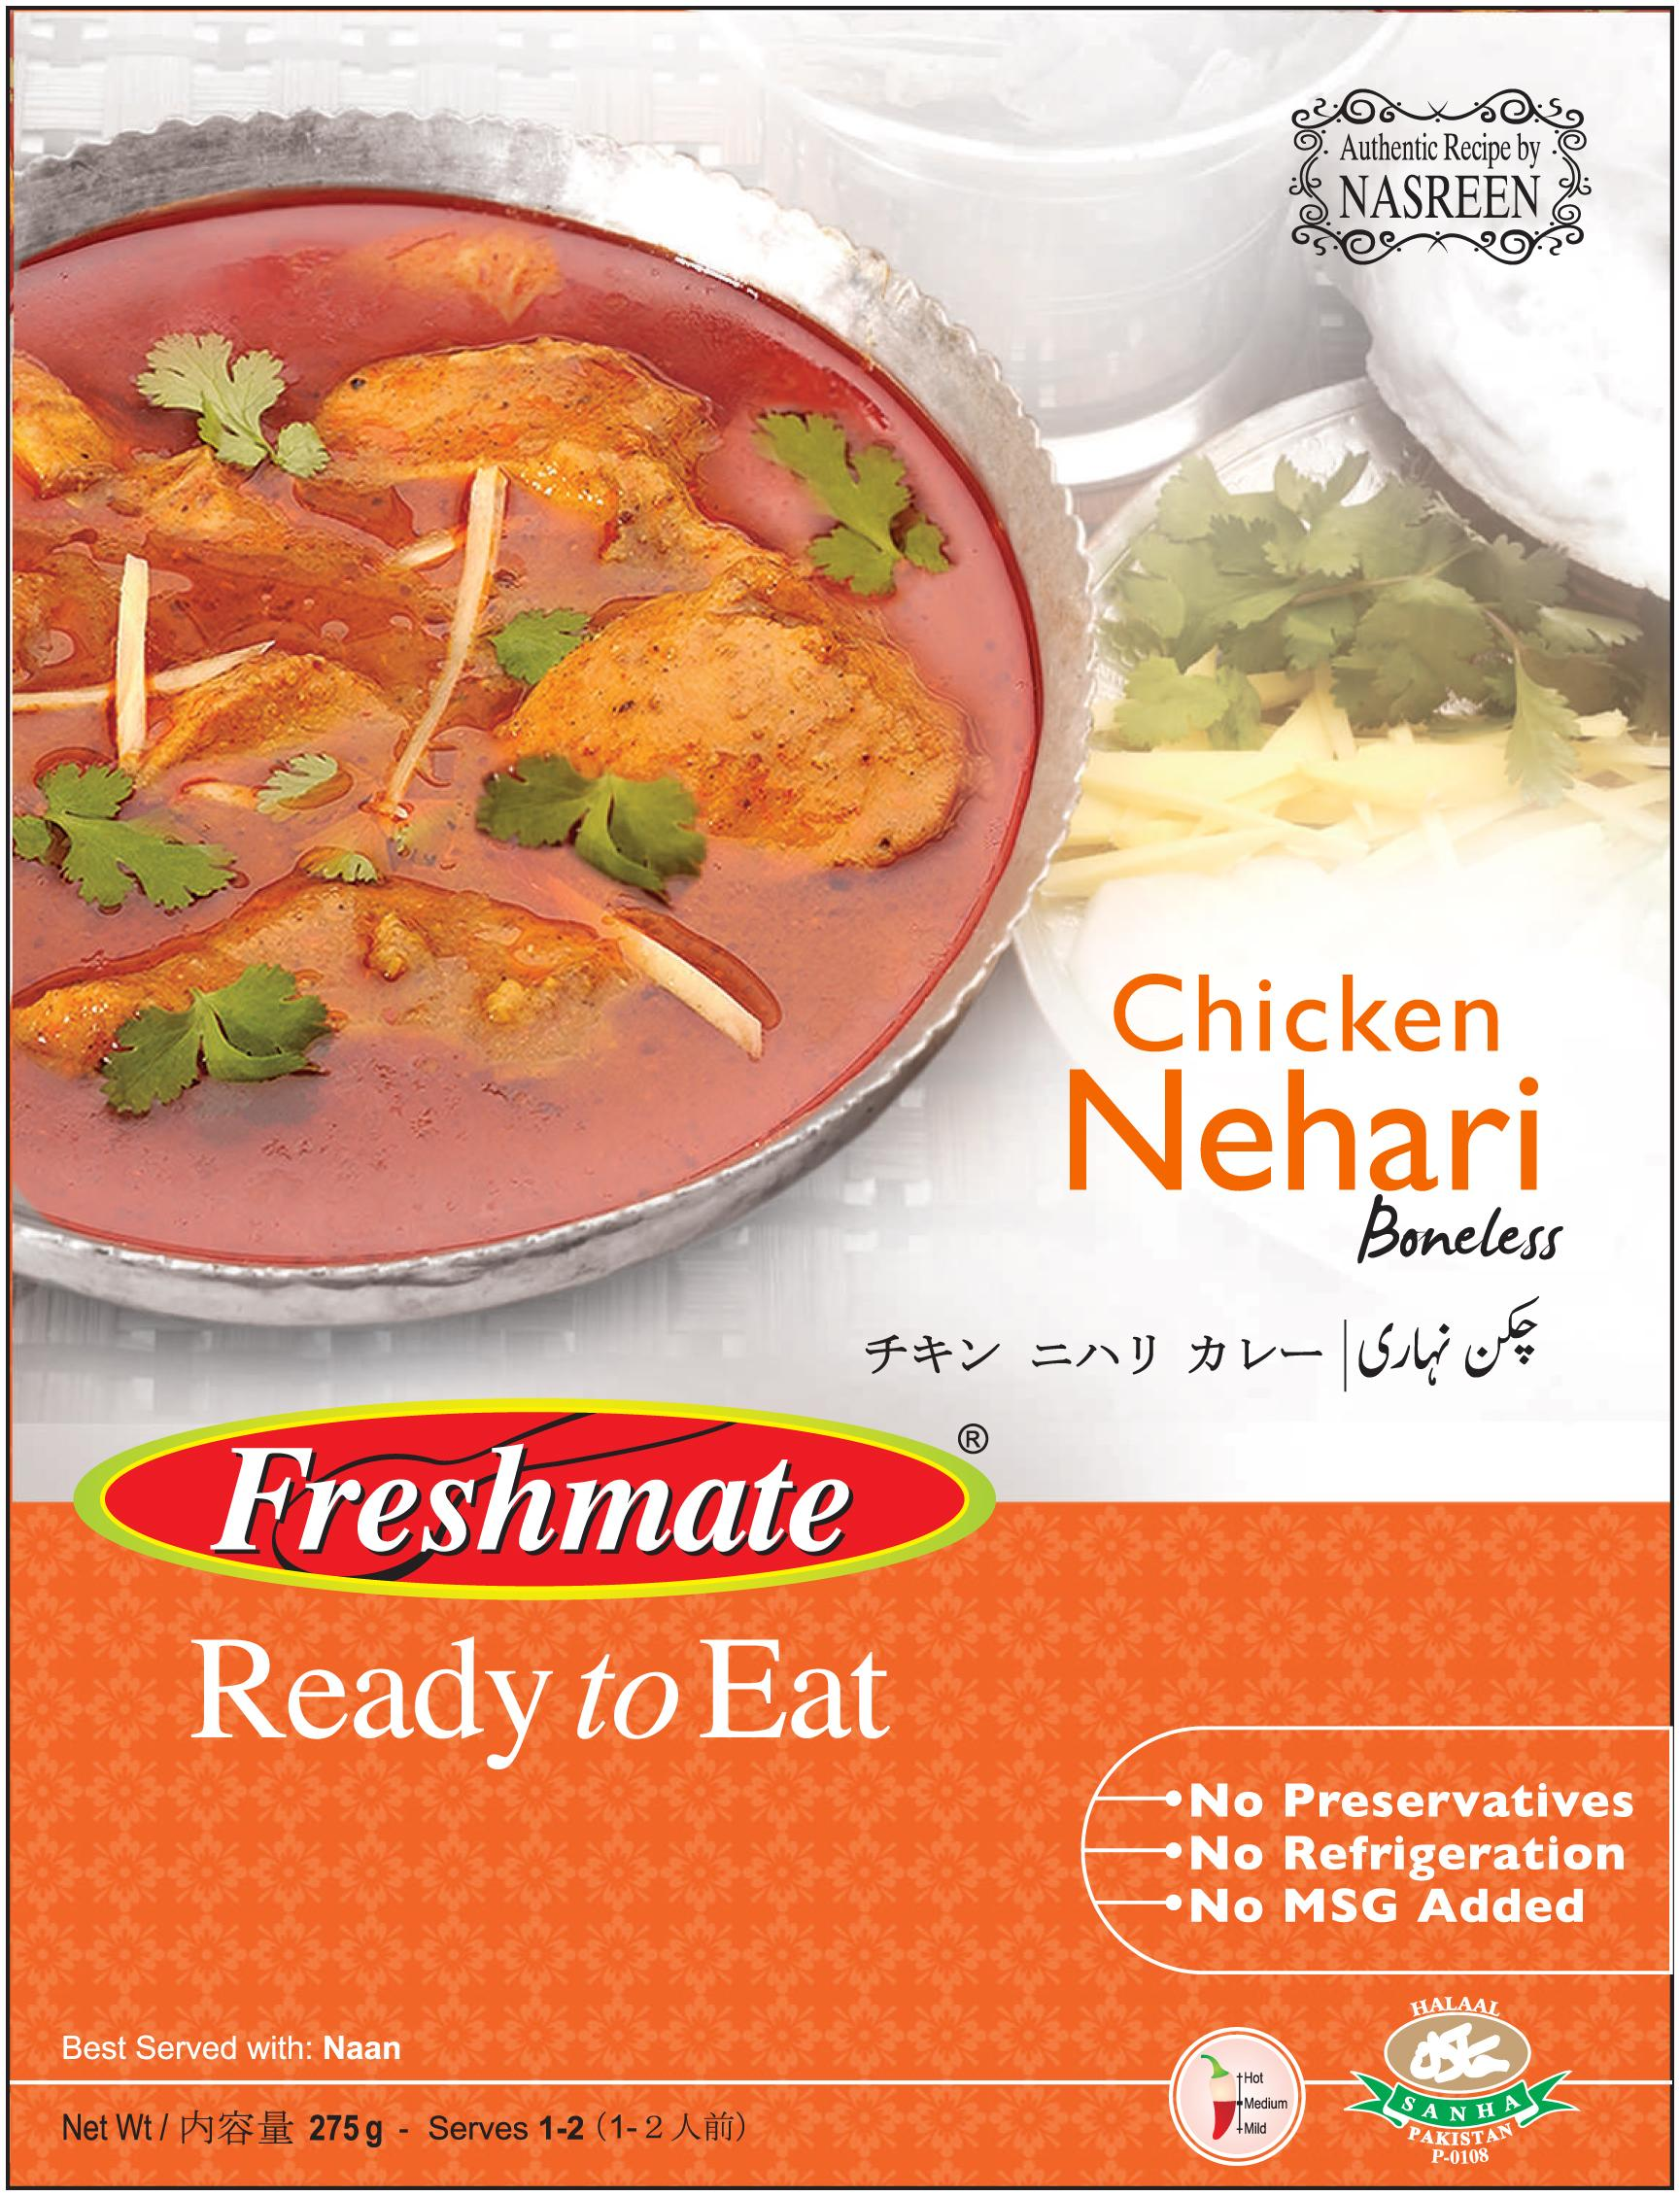 Chicken Nehari